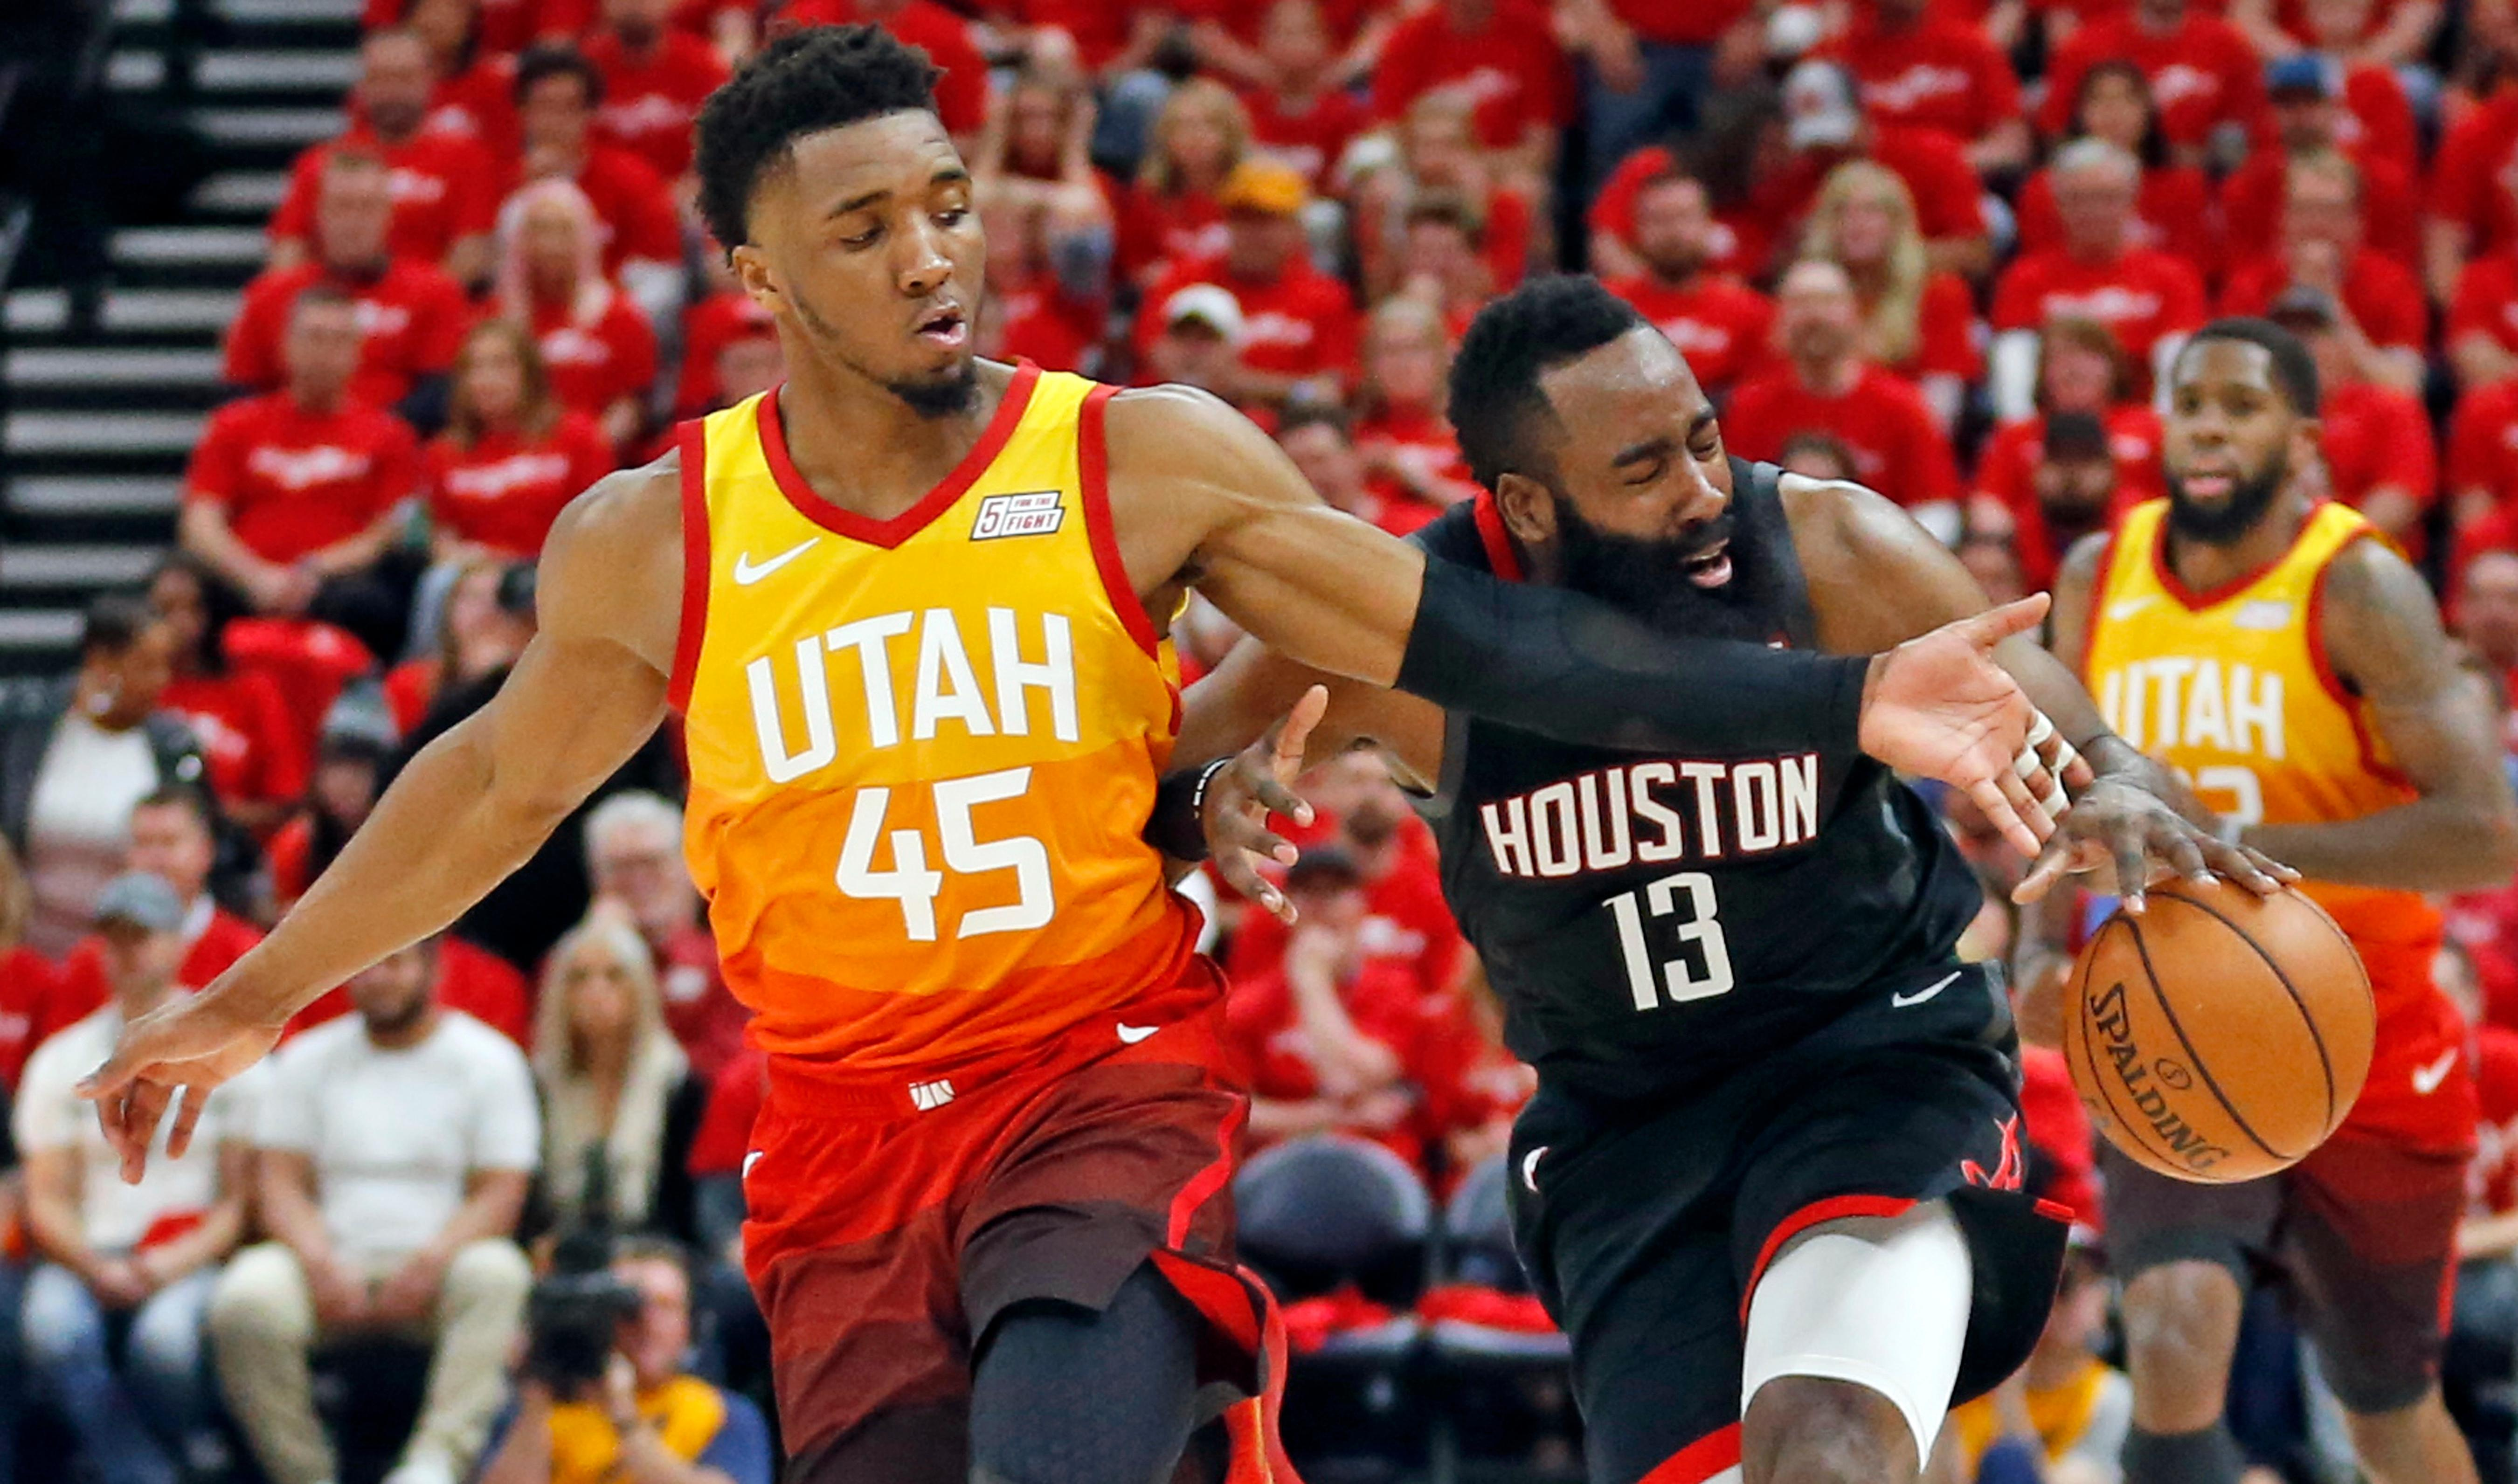 Utah Jazz guard Donovan Mitchell (45) defends against Houston Rockets guard James Harden (13) as he drives up court in the first half during an NBA basketball game Saturday, April 20, 2019, in Salt Lake City. (AP Photo/Rick Bowmer)